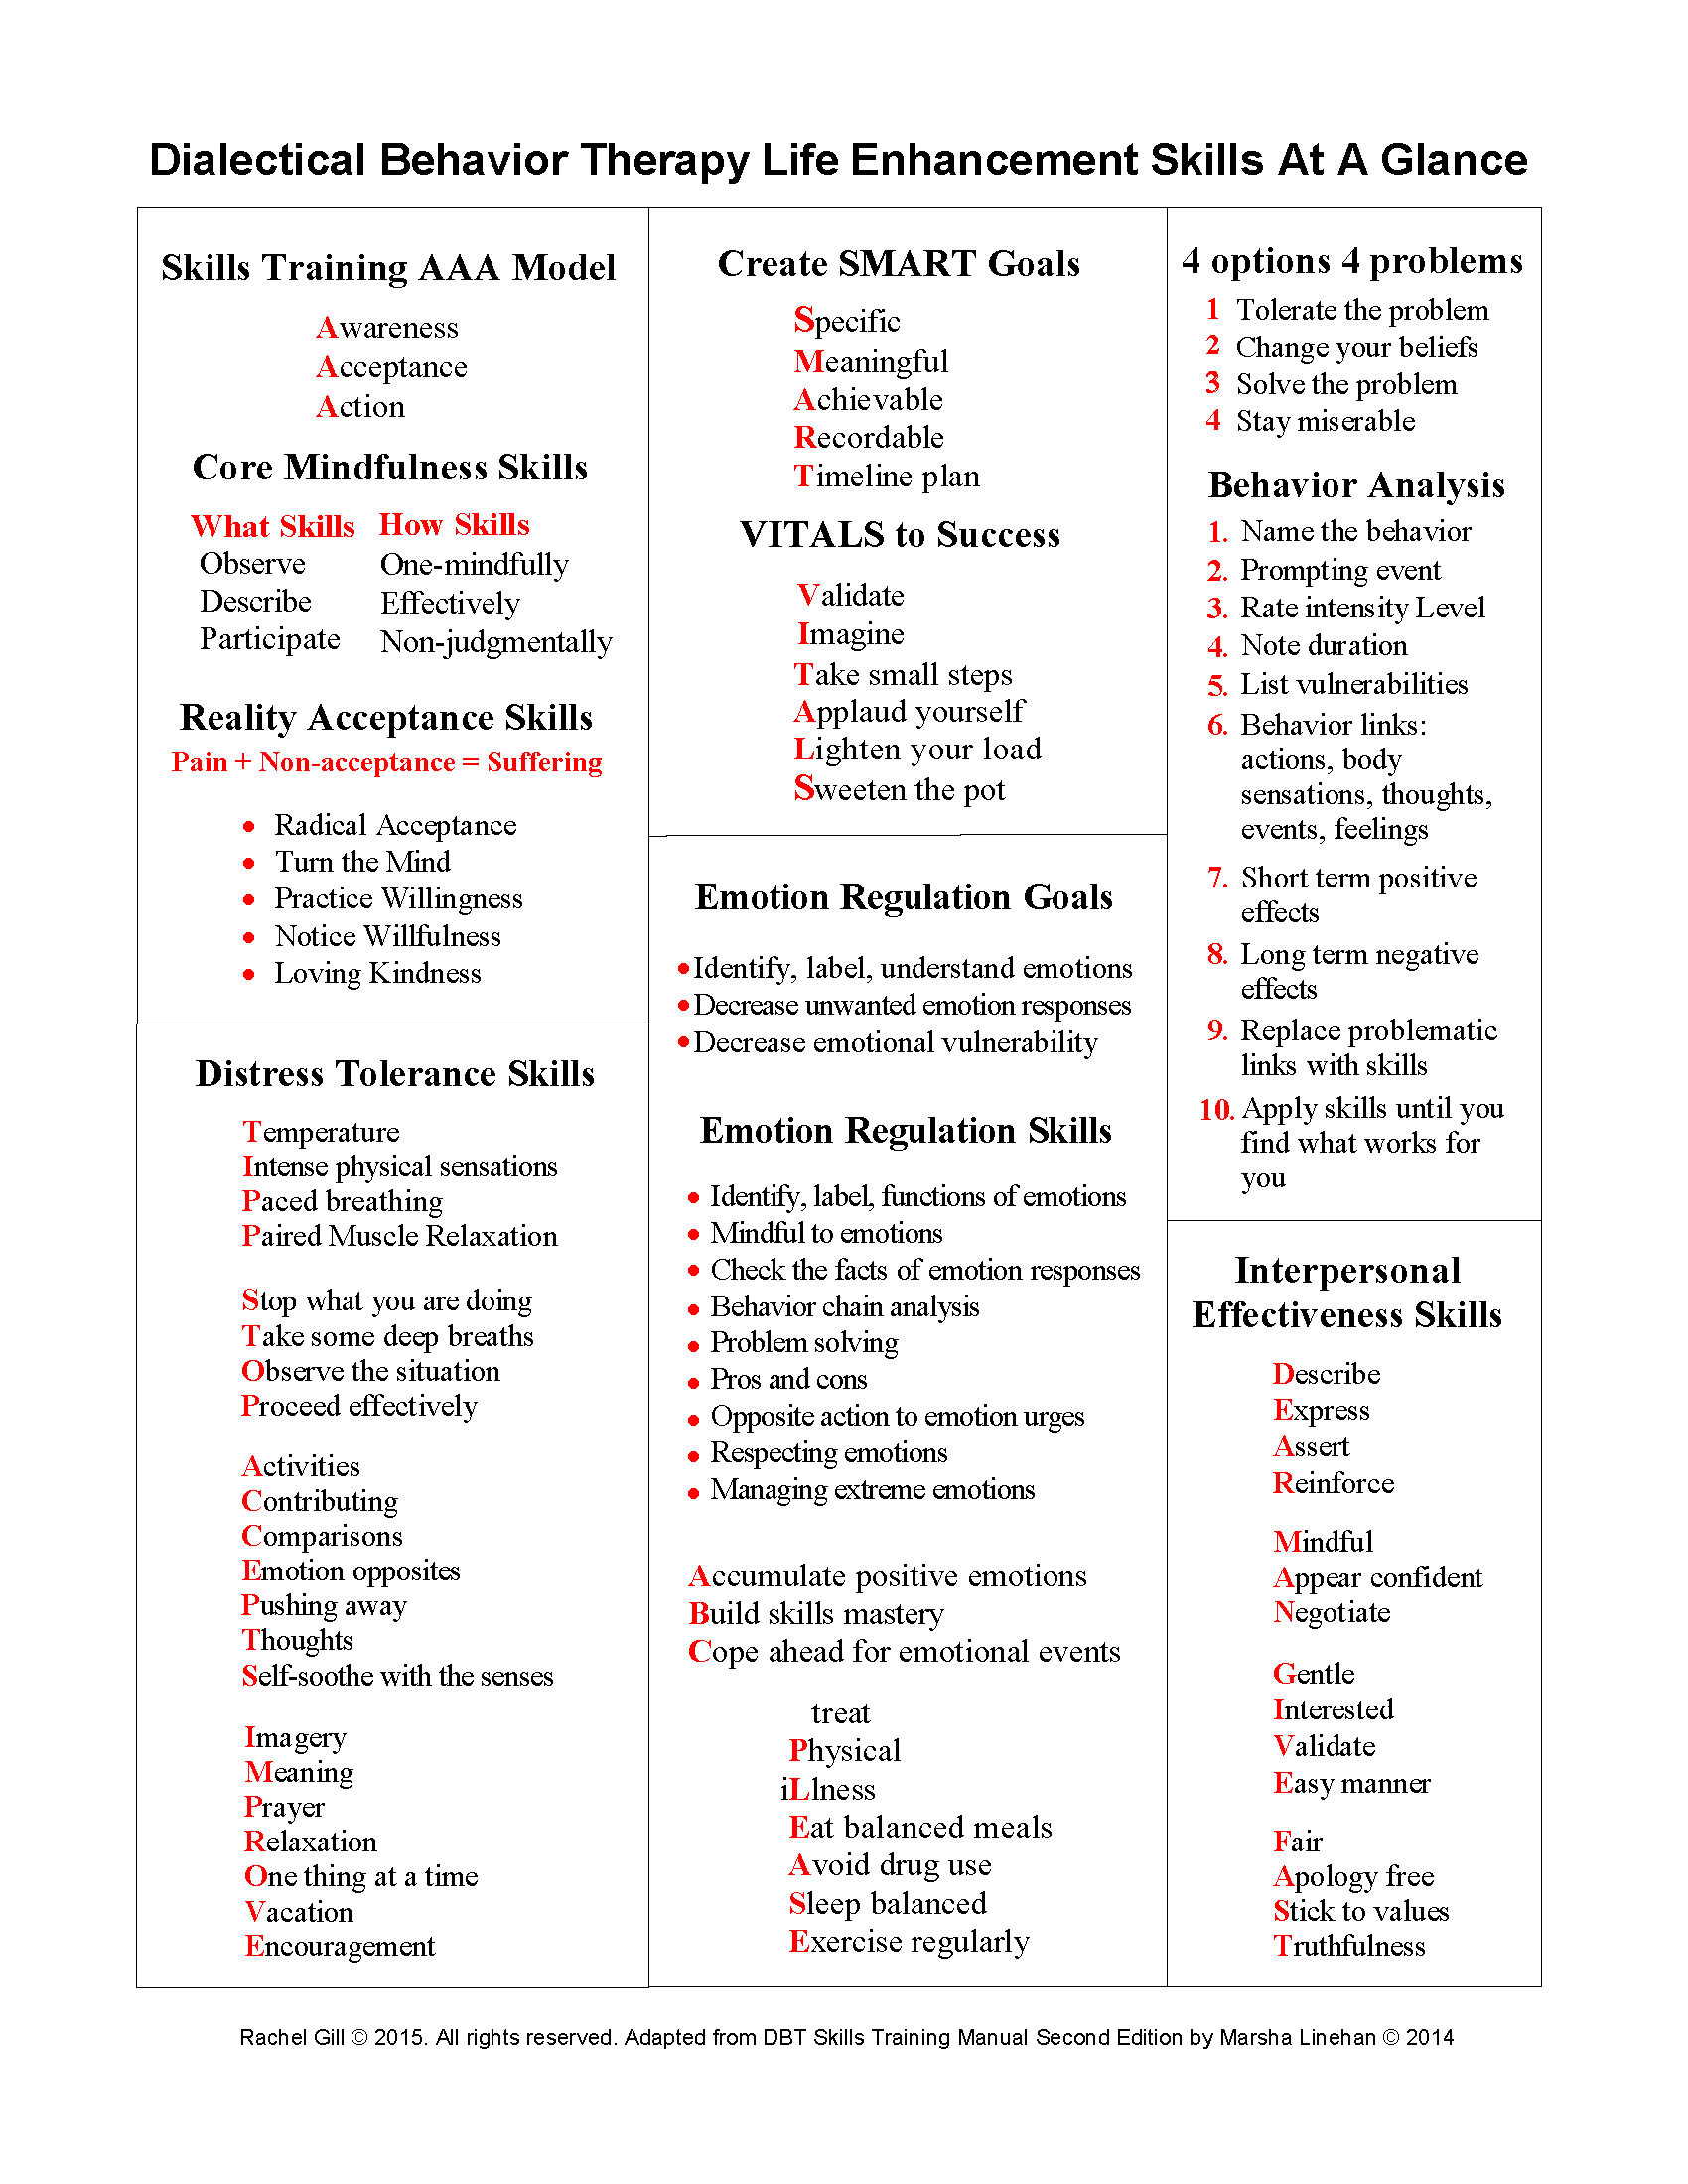 Worksheets Coping Skills Worksheet best 25 coping skills ideas on pinterest for 100 free strategies anxiety anger depression and more